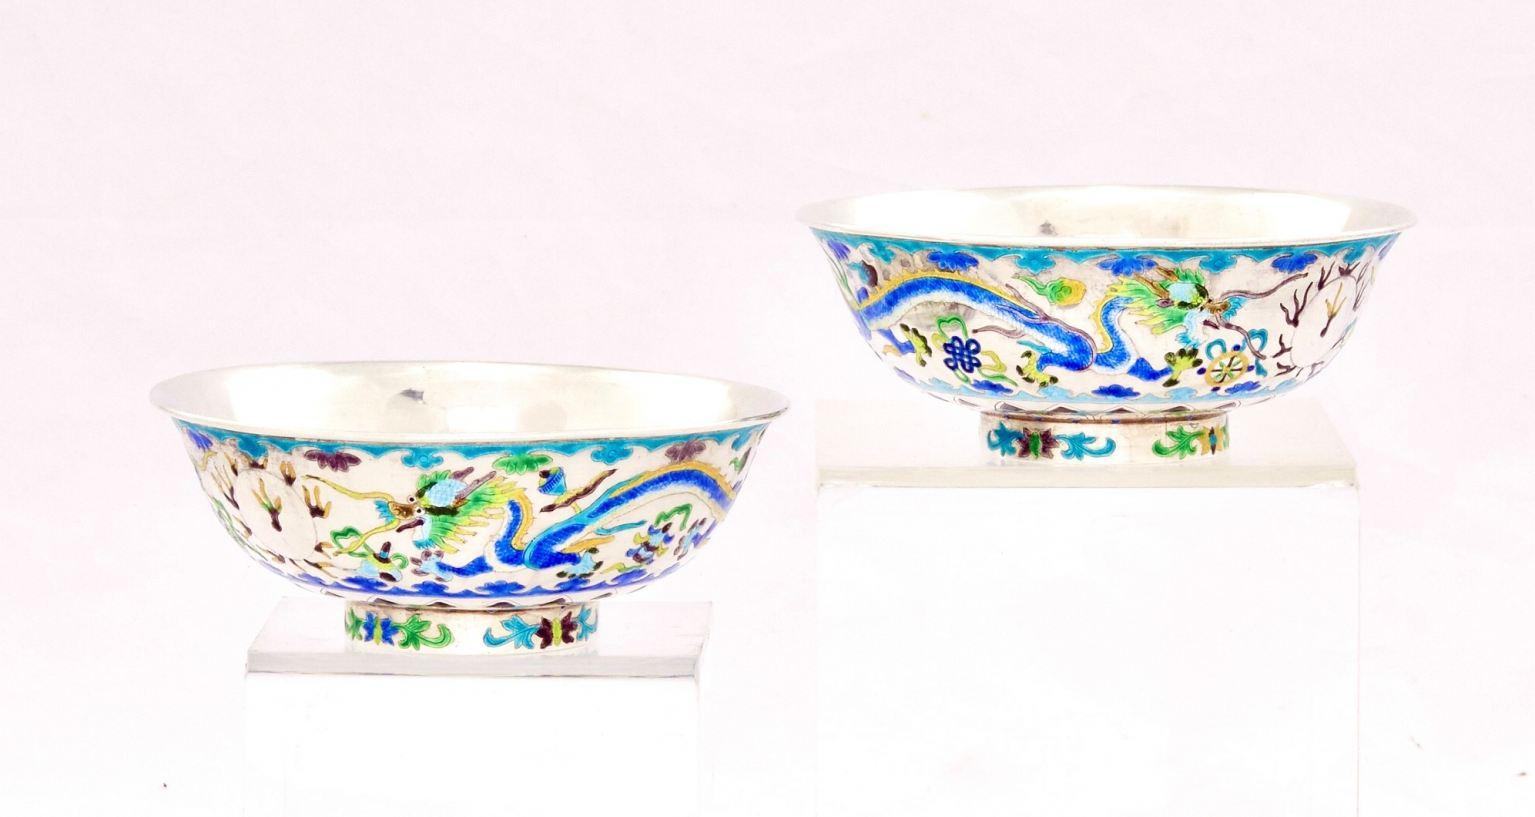 Pair of Chinese enameled silver bowls, post-1950.